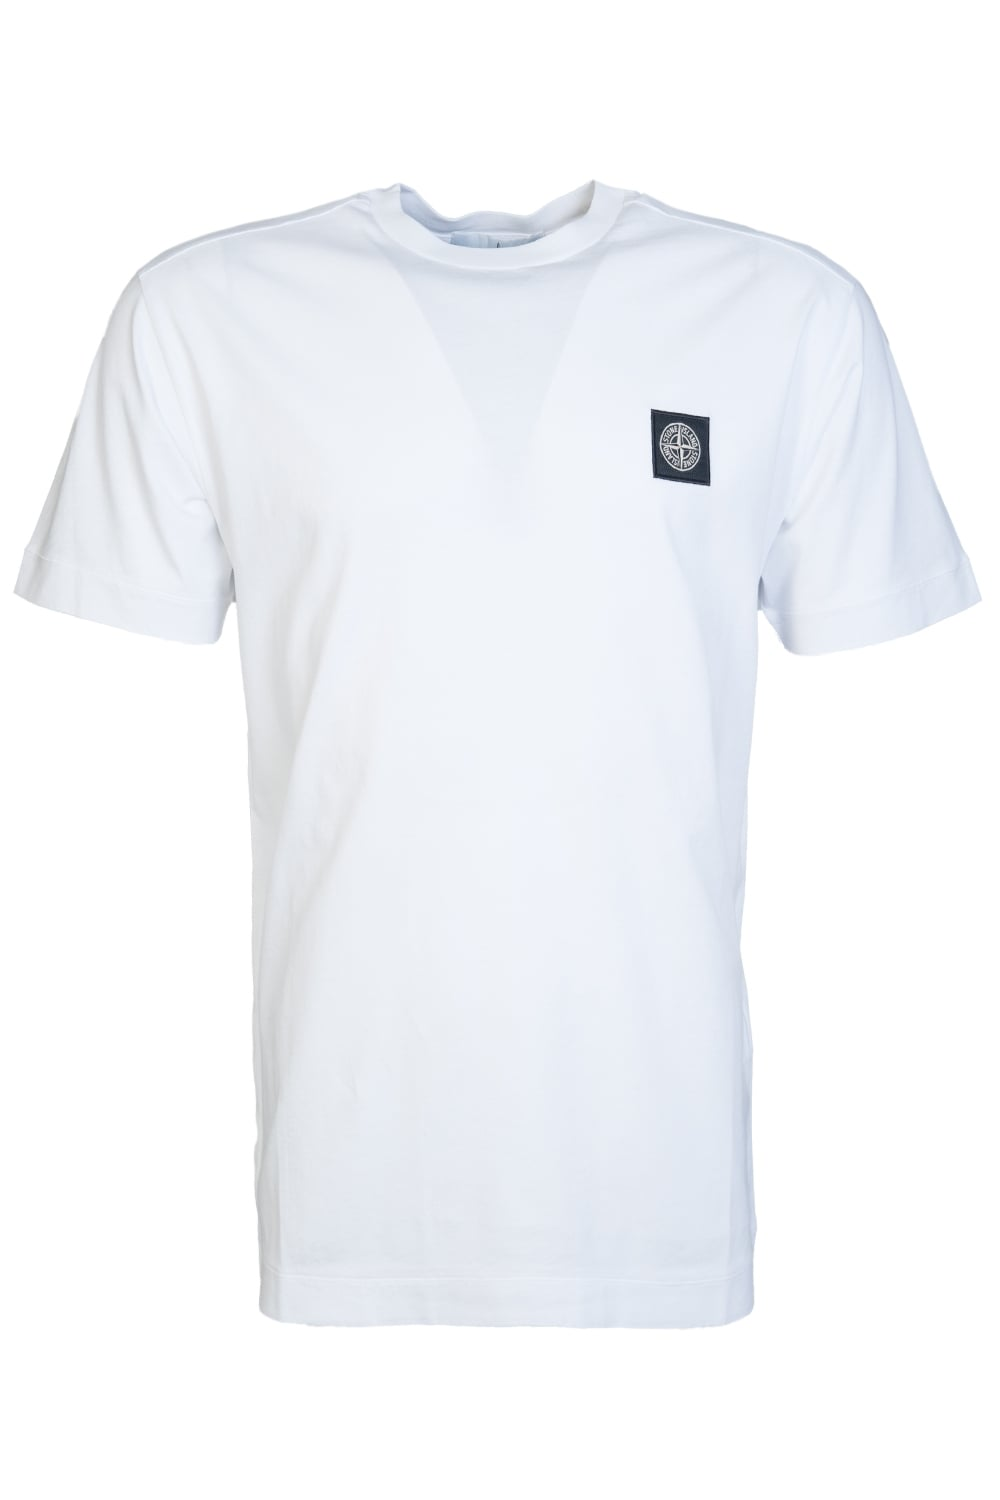 Stone Island T Shirt 671524141 - Clothing from Sage Clothing UK dbeaac25e